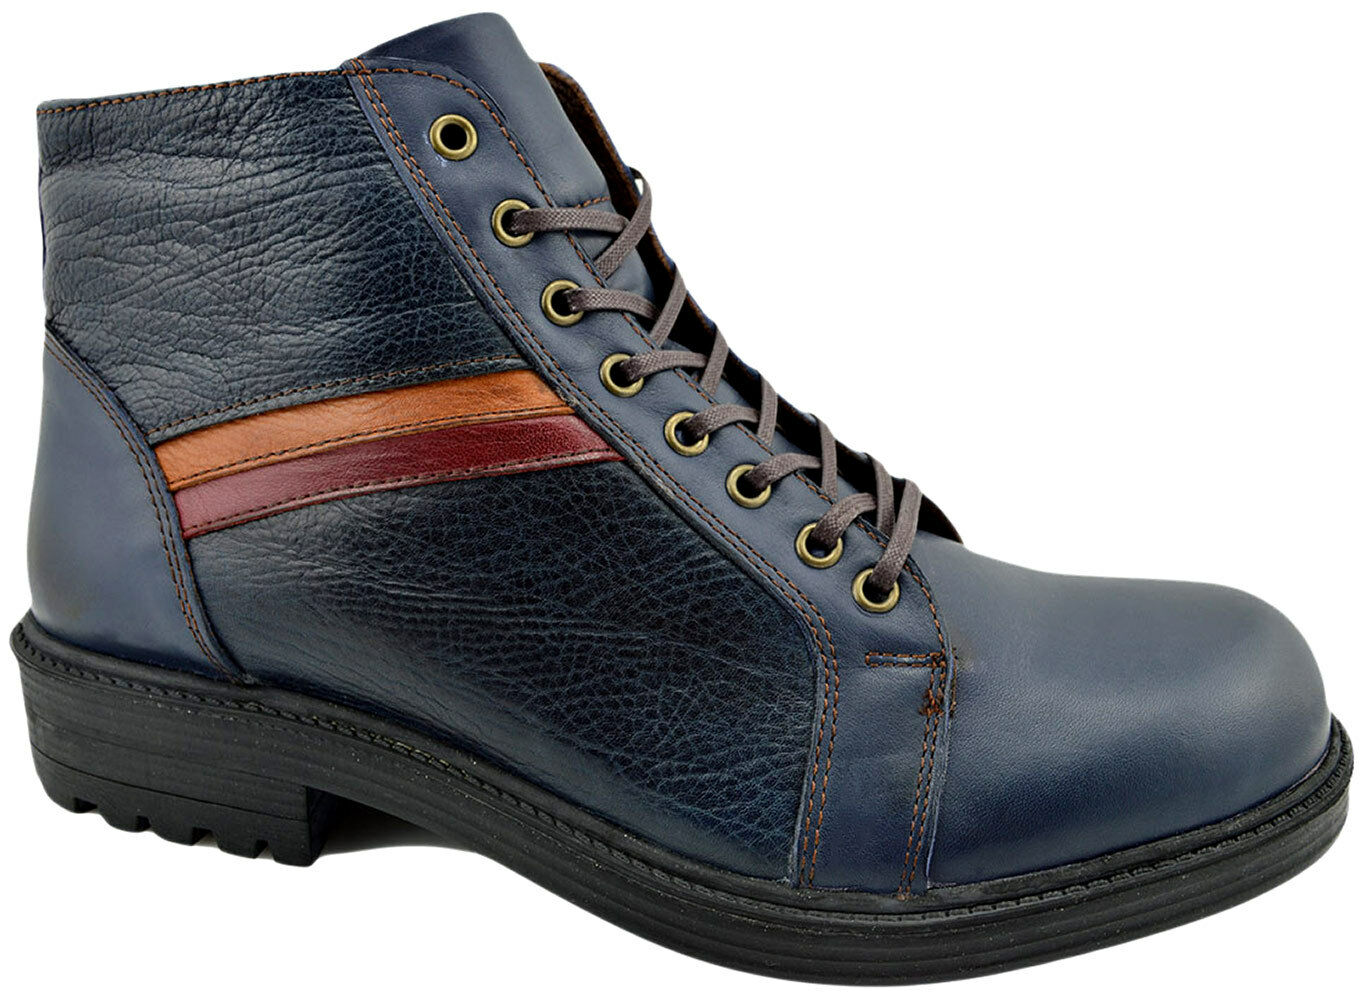 REACTOR bluee Calf Leather Ankle Boots Men shoes